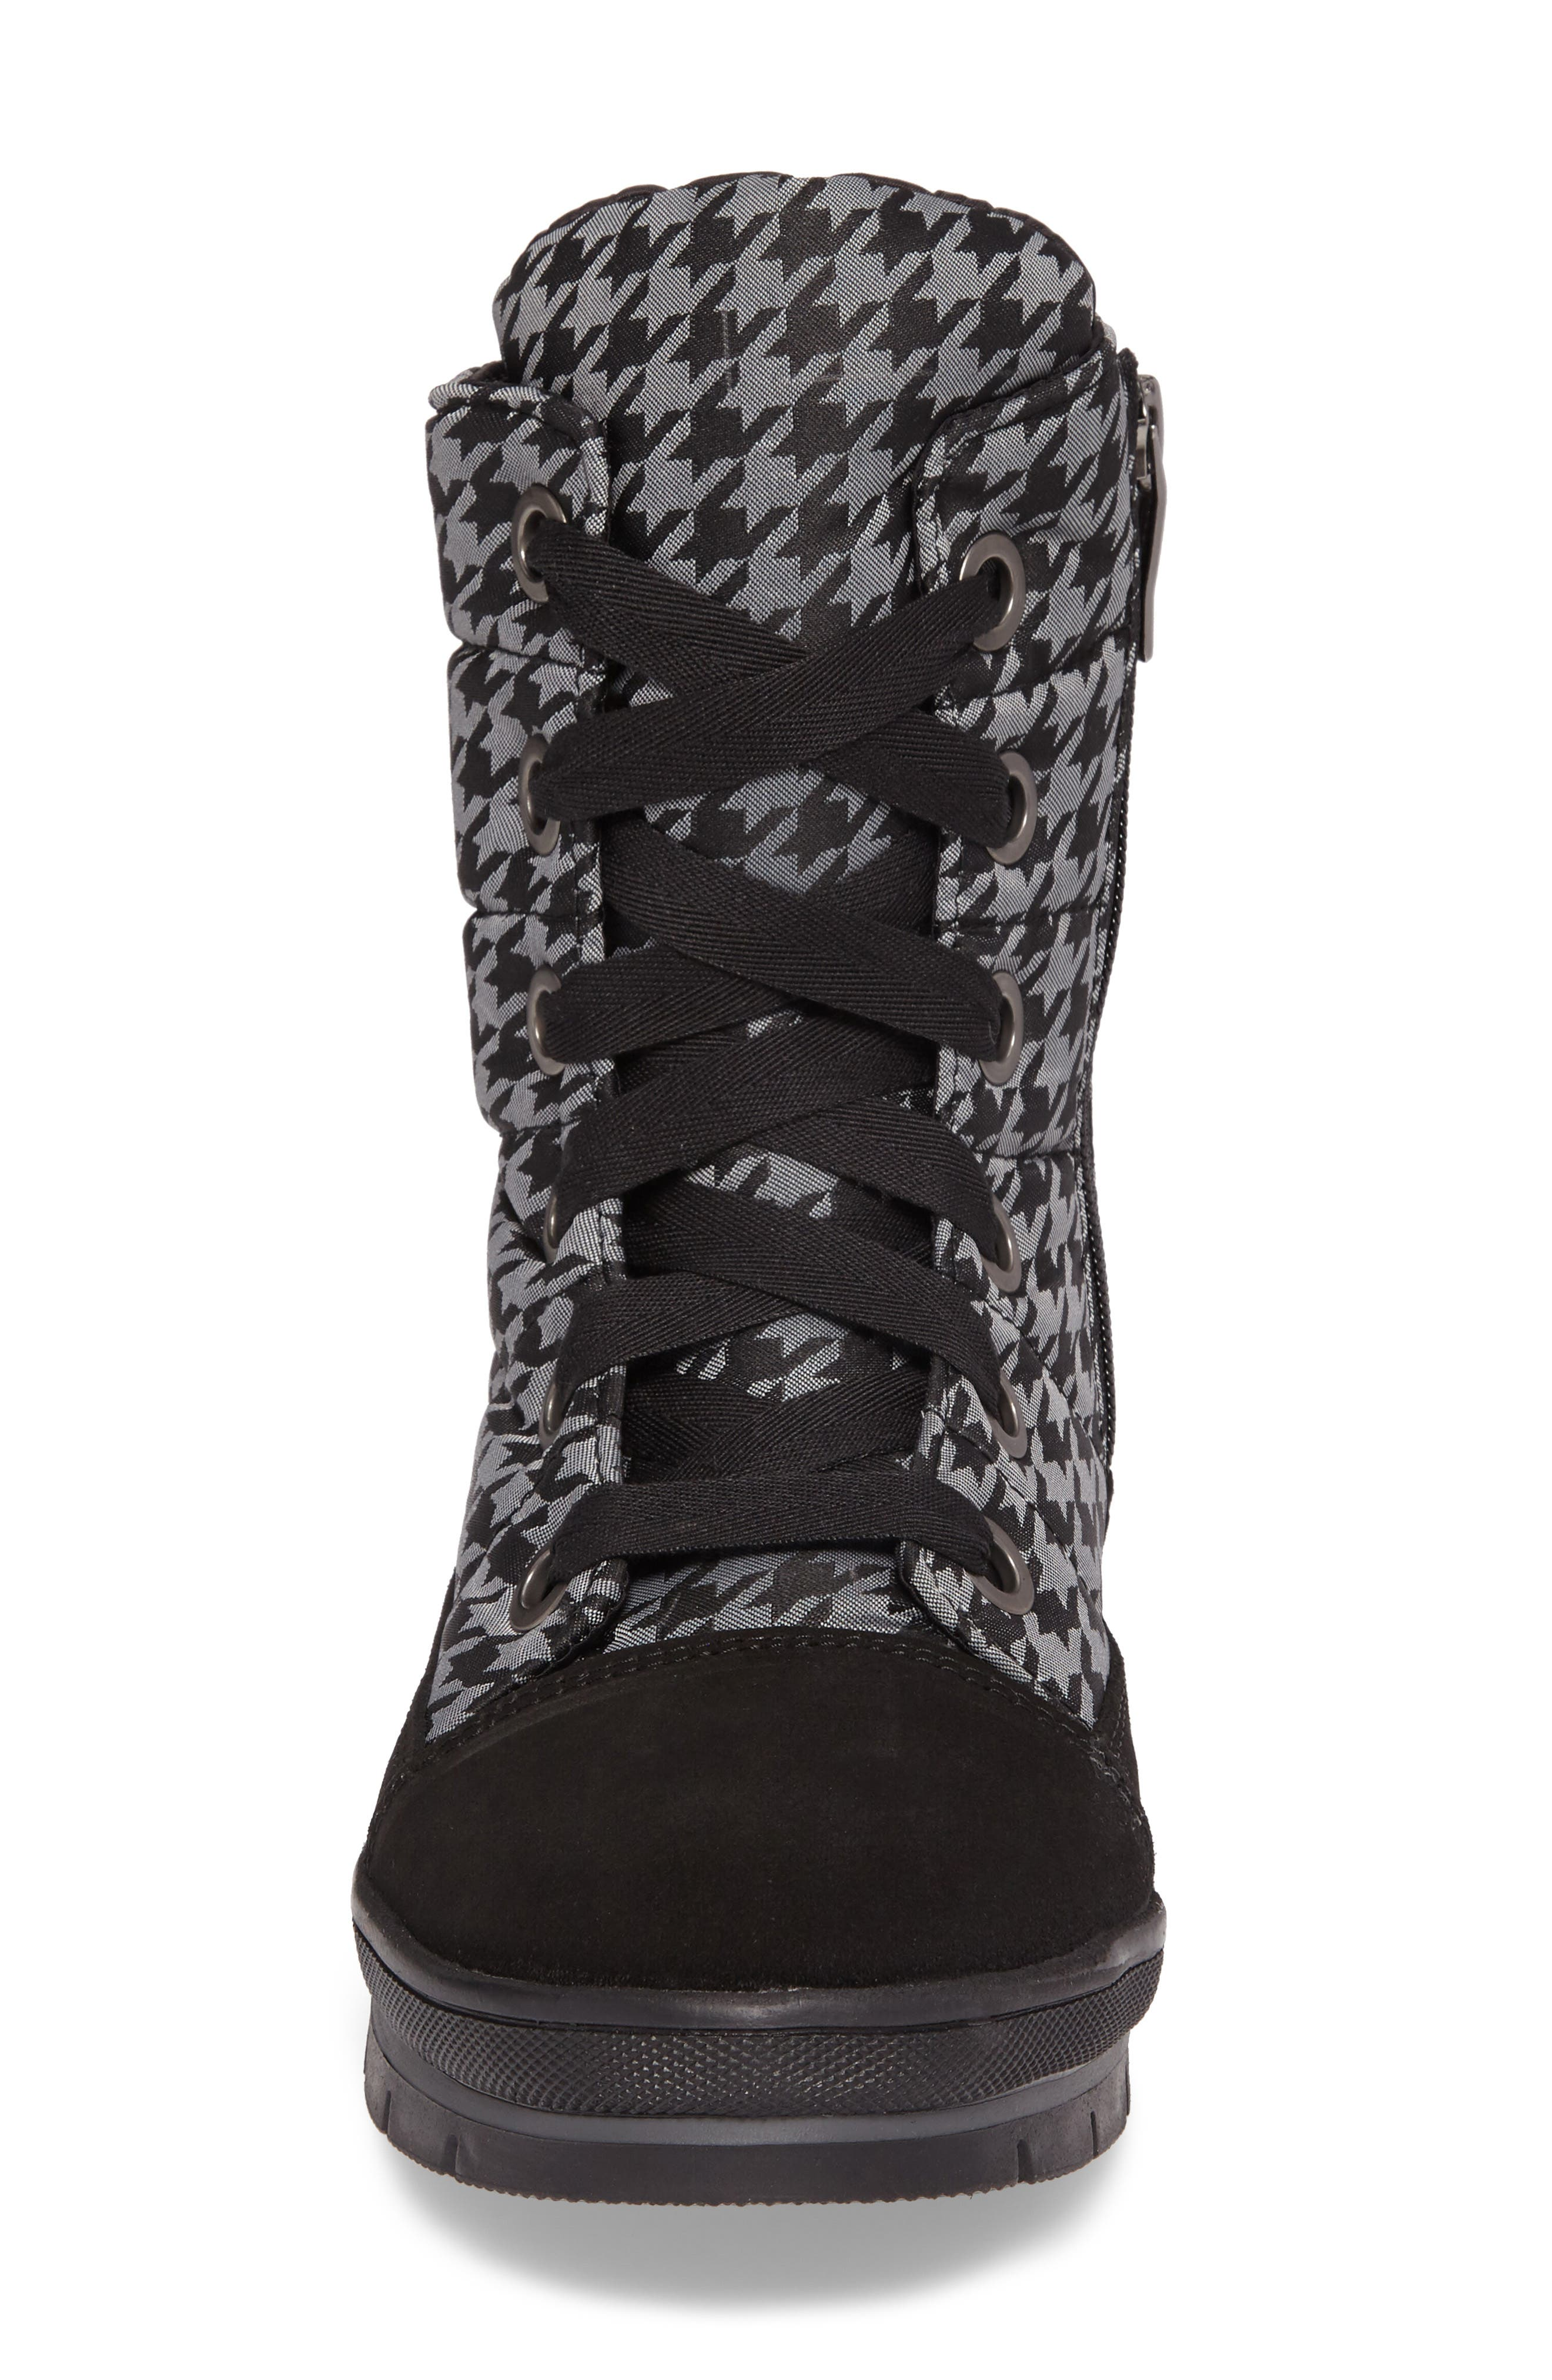 Meribel Waterproof Channel Quilted Lace Up Sneaker Boot,                             Alternate thumbnail 4, color,                             008